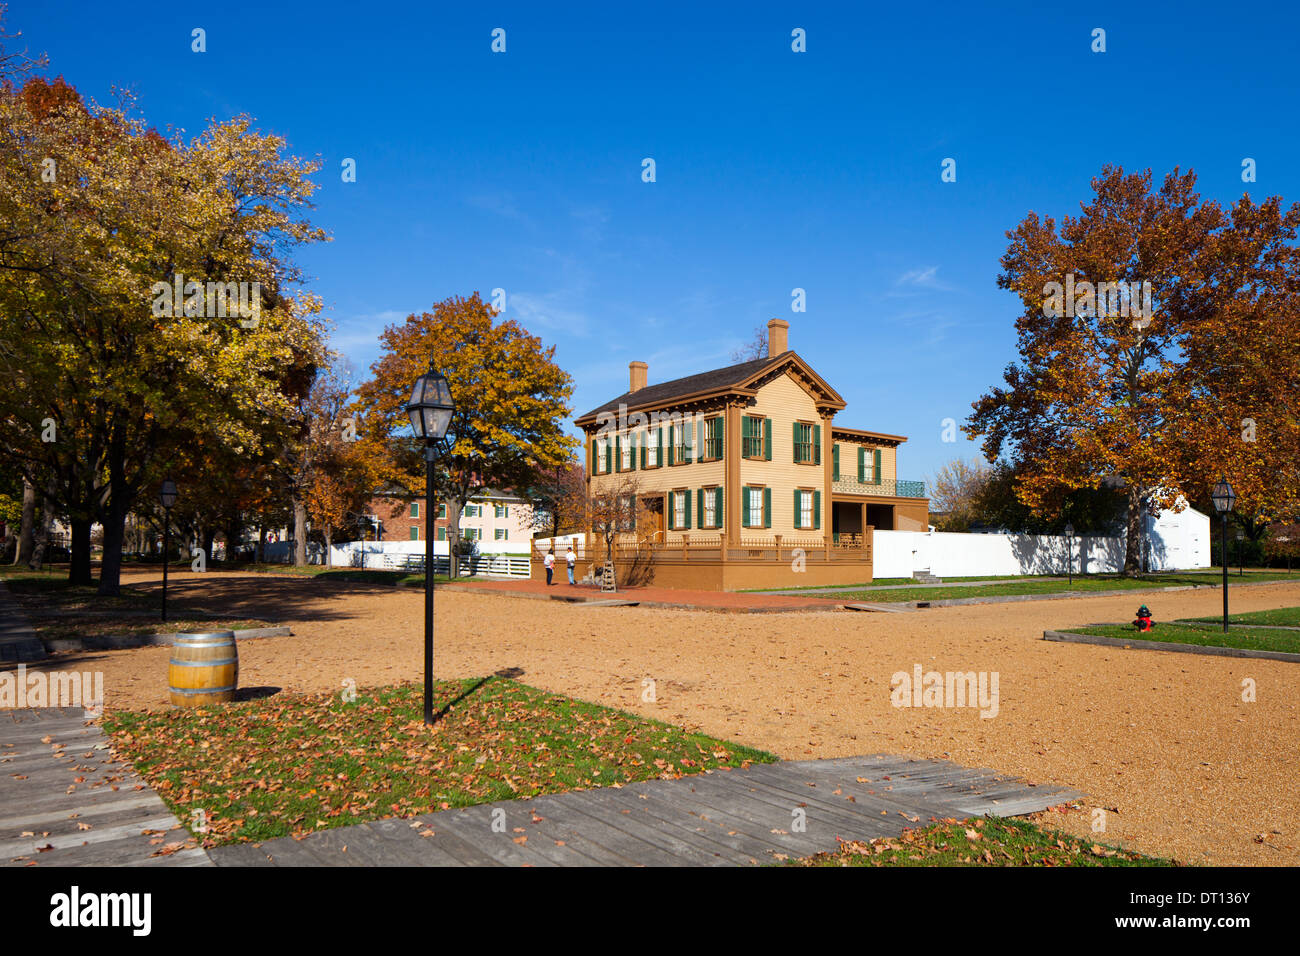 Abraham Lincoln's home in Springfield, IL, seen here, is now a National Historic District. - Stock Image